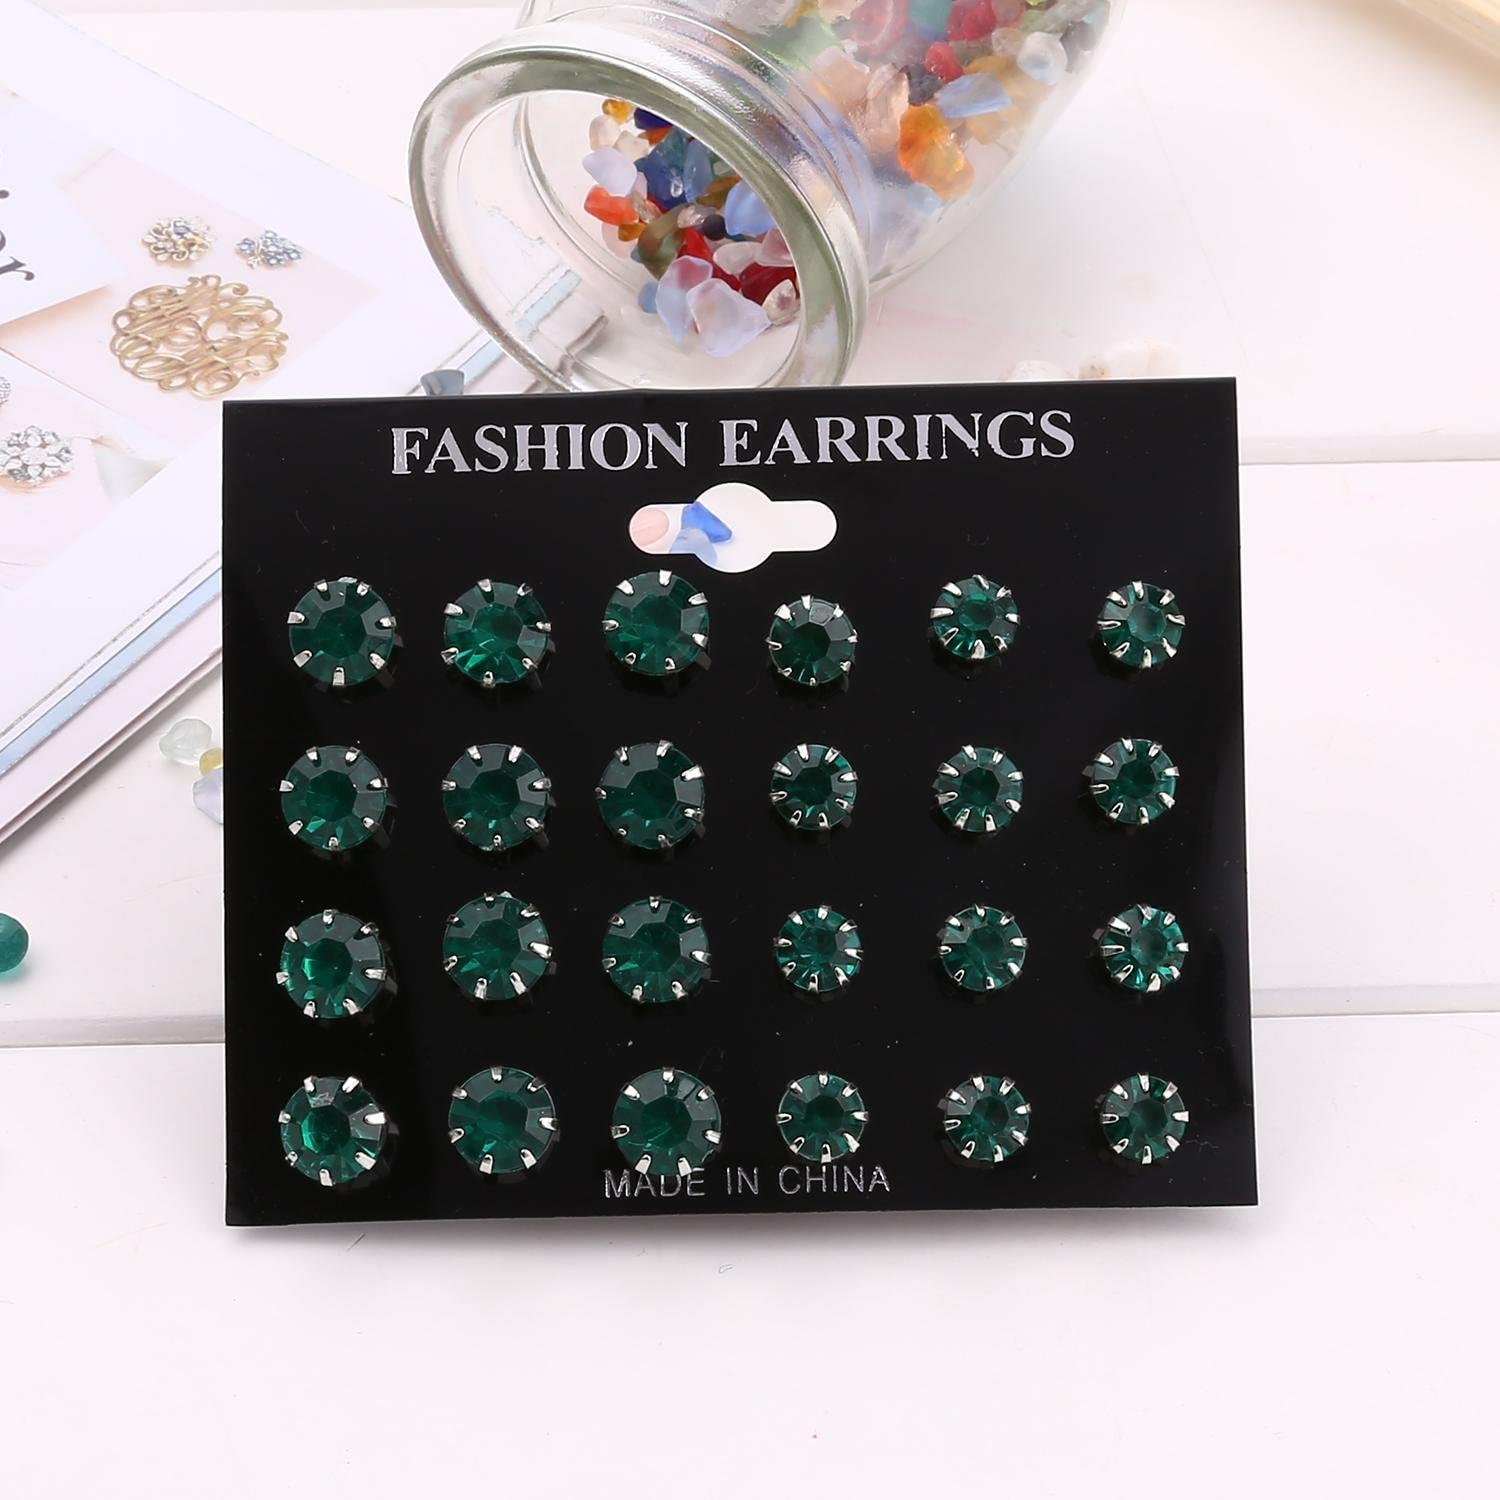 Meflying 12 Pairs Minimalist Fashion Rhinestone Inlaied Pierced Stud Earrings Stud